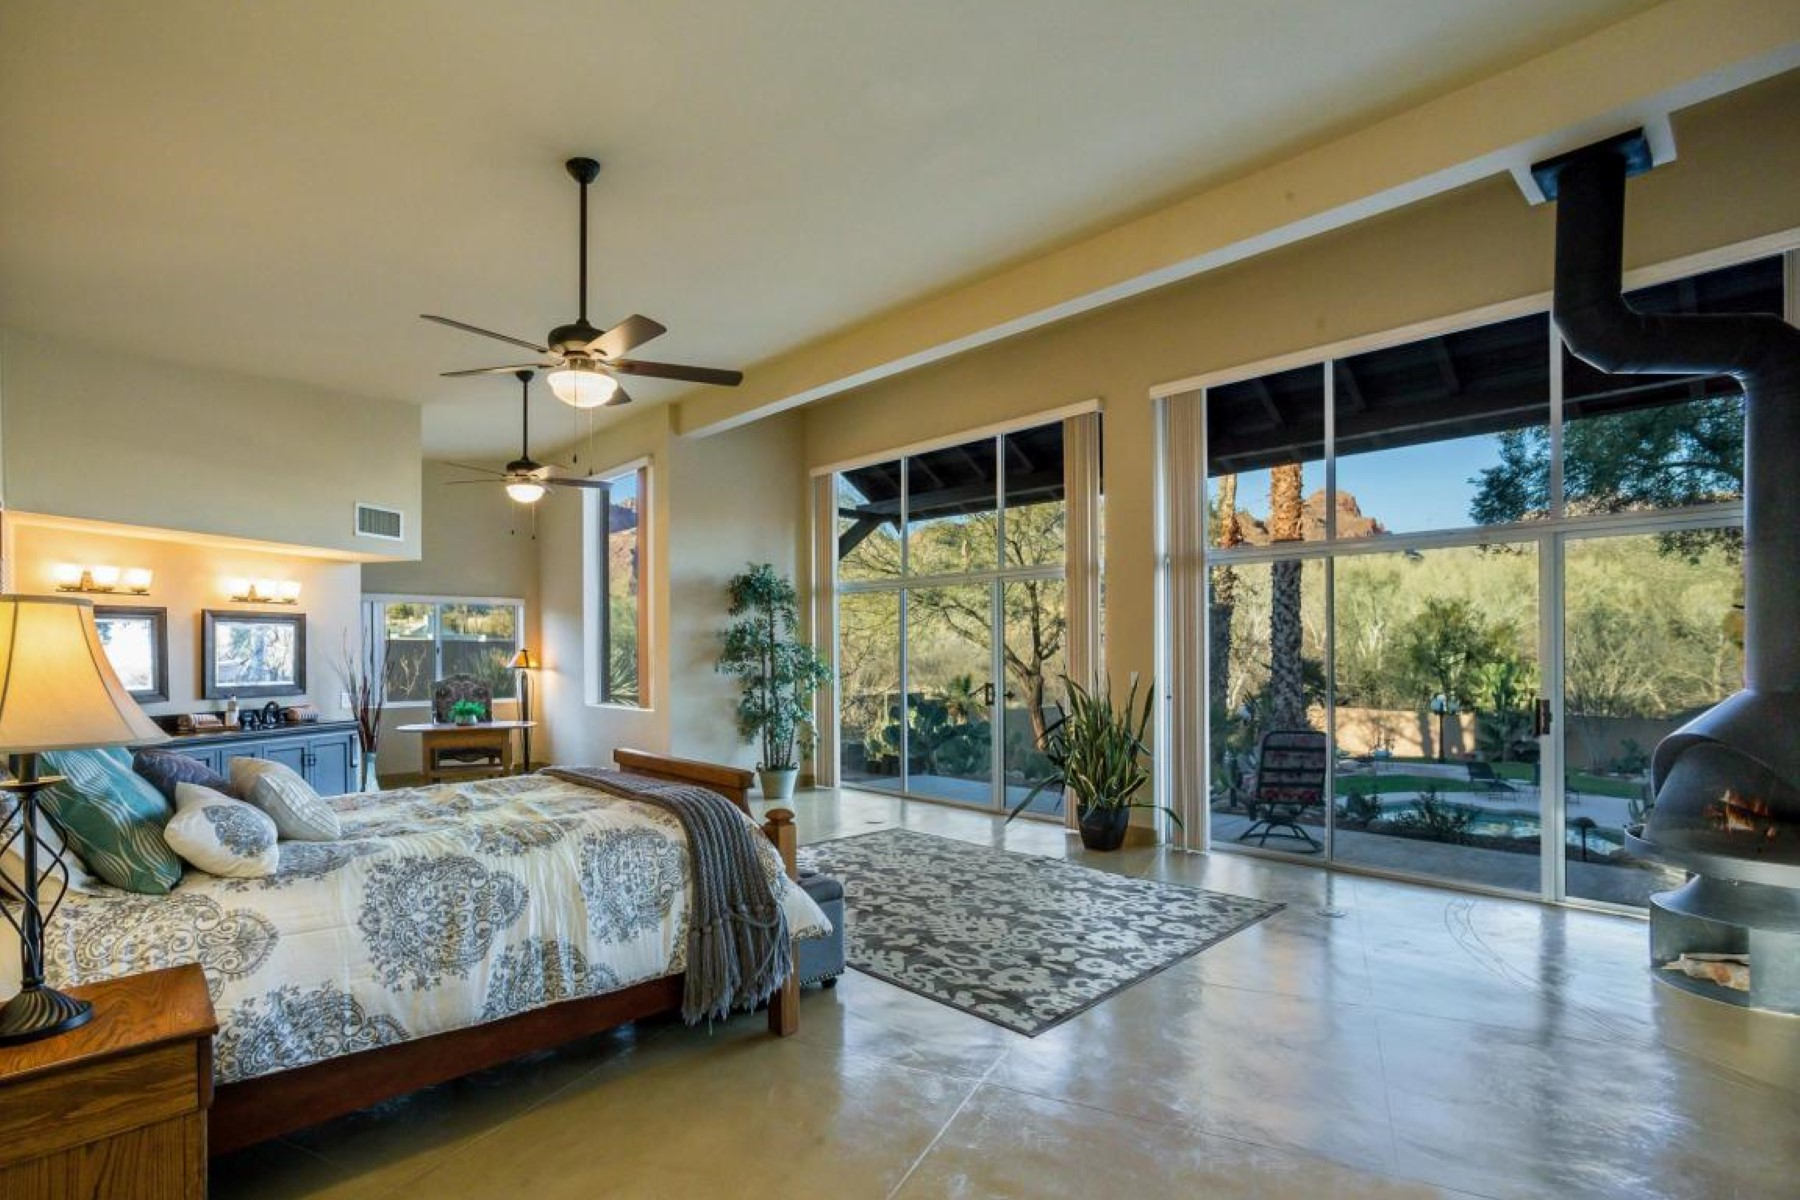 Single Family Home for Sale at Beautiful Tucson home with spectacular views 5150 N Hidden Valley Road Tucson, Arizona, 85750 United States